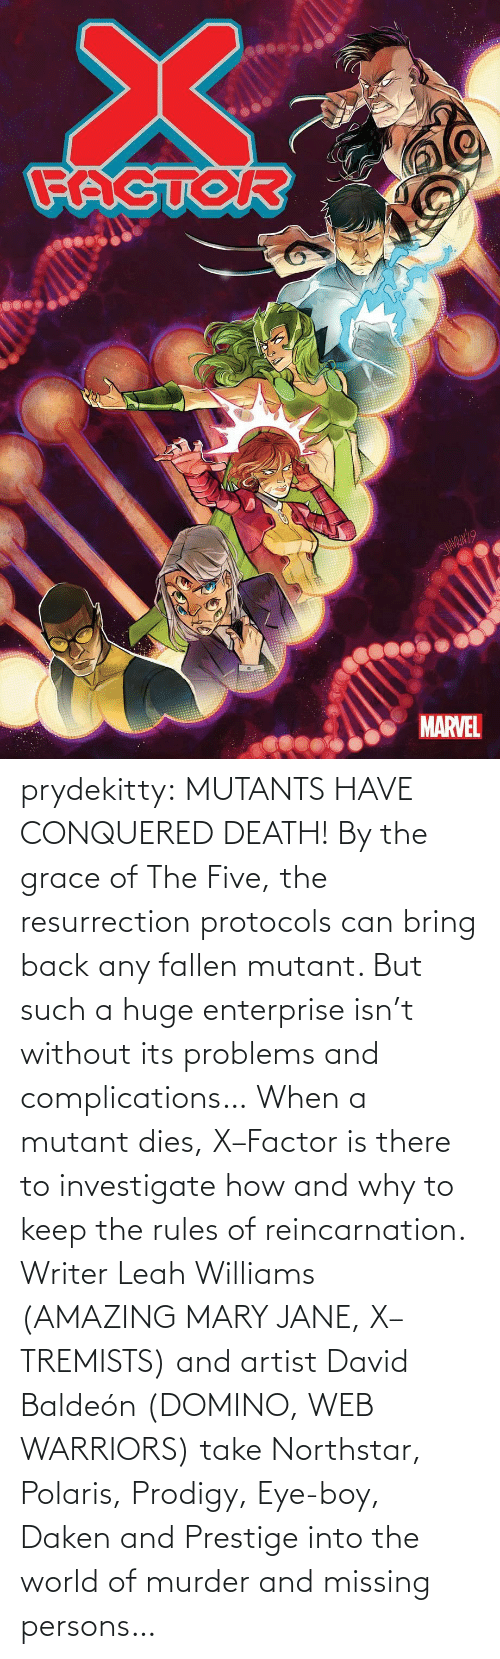 Mary Jane: prydekitty:  MUTANTS HAVE CONQUERED DEATH! By the grace of The Five, the resurrection protocols can bring back any fallen mutant. But such a huge enterprise isn't without its problems and complications… When a mutant dies, X–Factor is there to investigate how and why to keep the rules of reincarnation. Writer Leah Williams (AMAZING MARY JANE, X–TREMISTS) and artist David Baldeón (DOMINO, WEB WARRIORS) take Northstar, Polaris, Prodigy, Eye-boy, Daken and Prestige into the world of murder and missing persons…